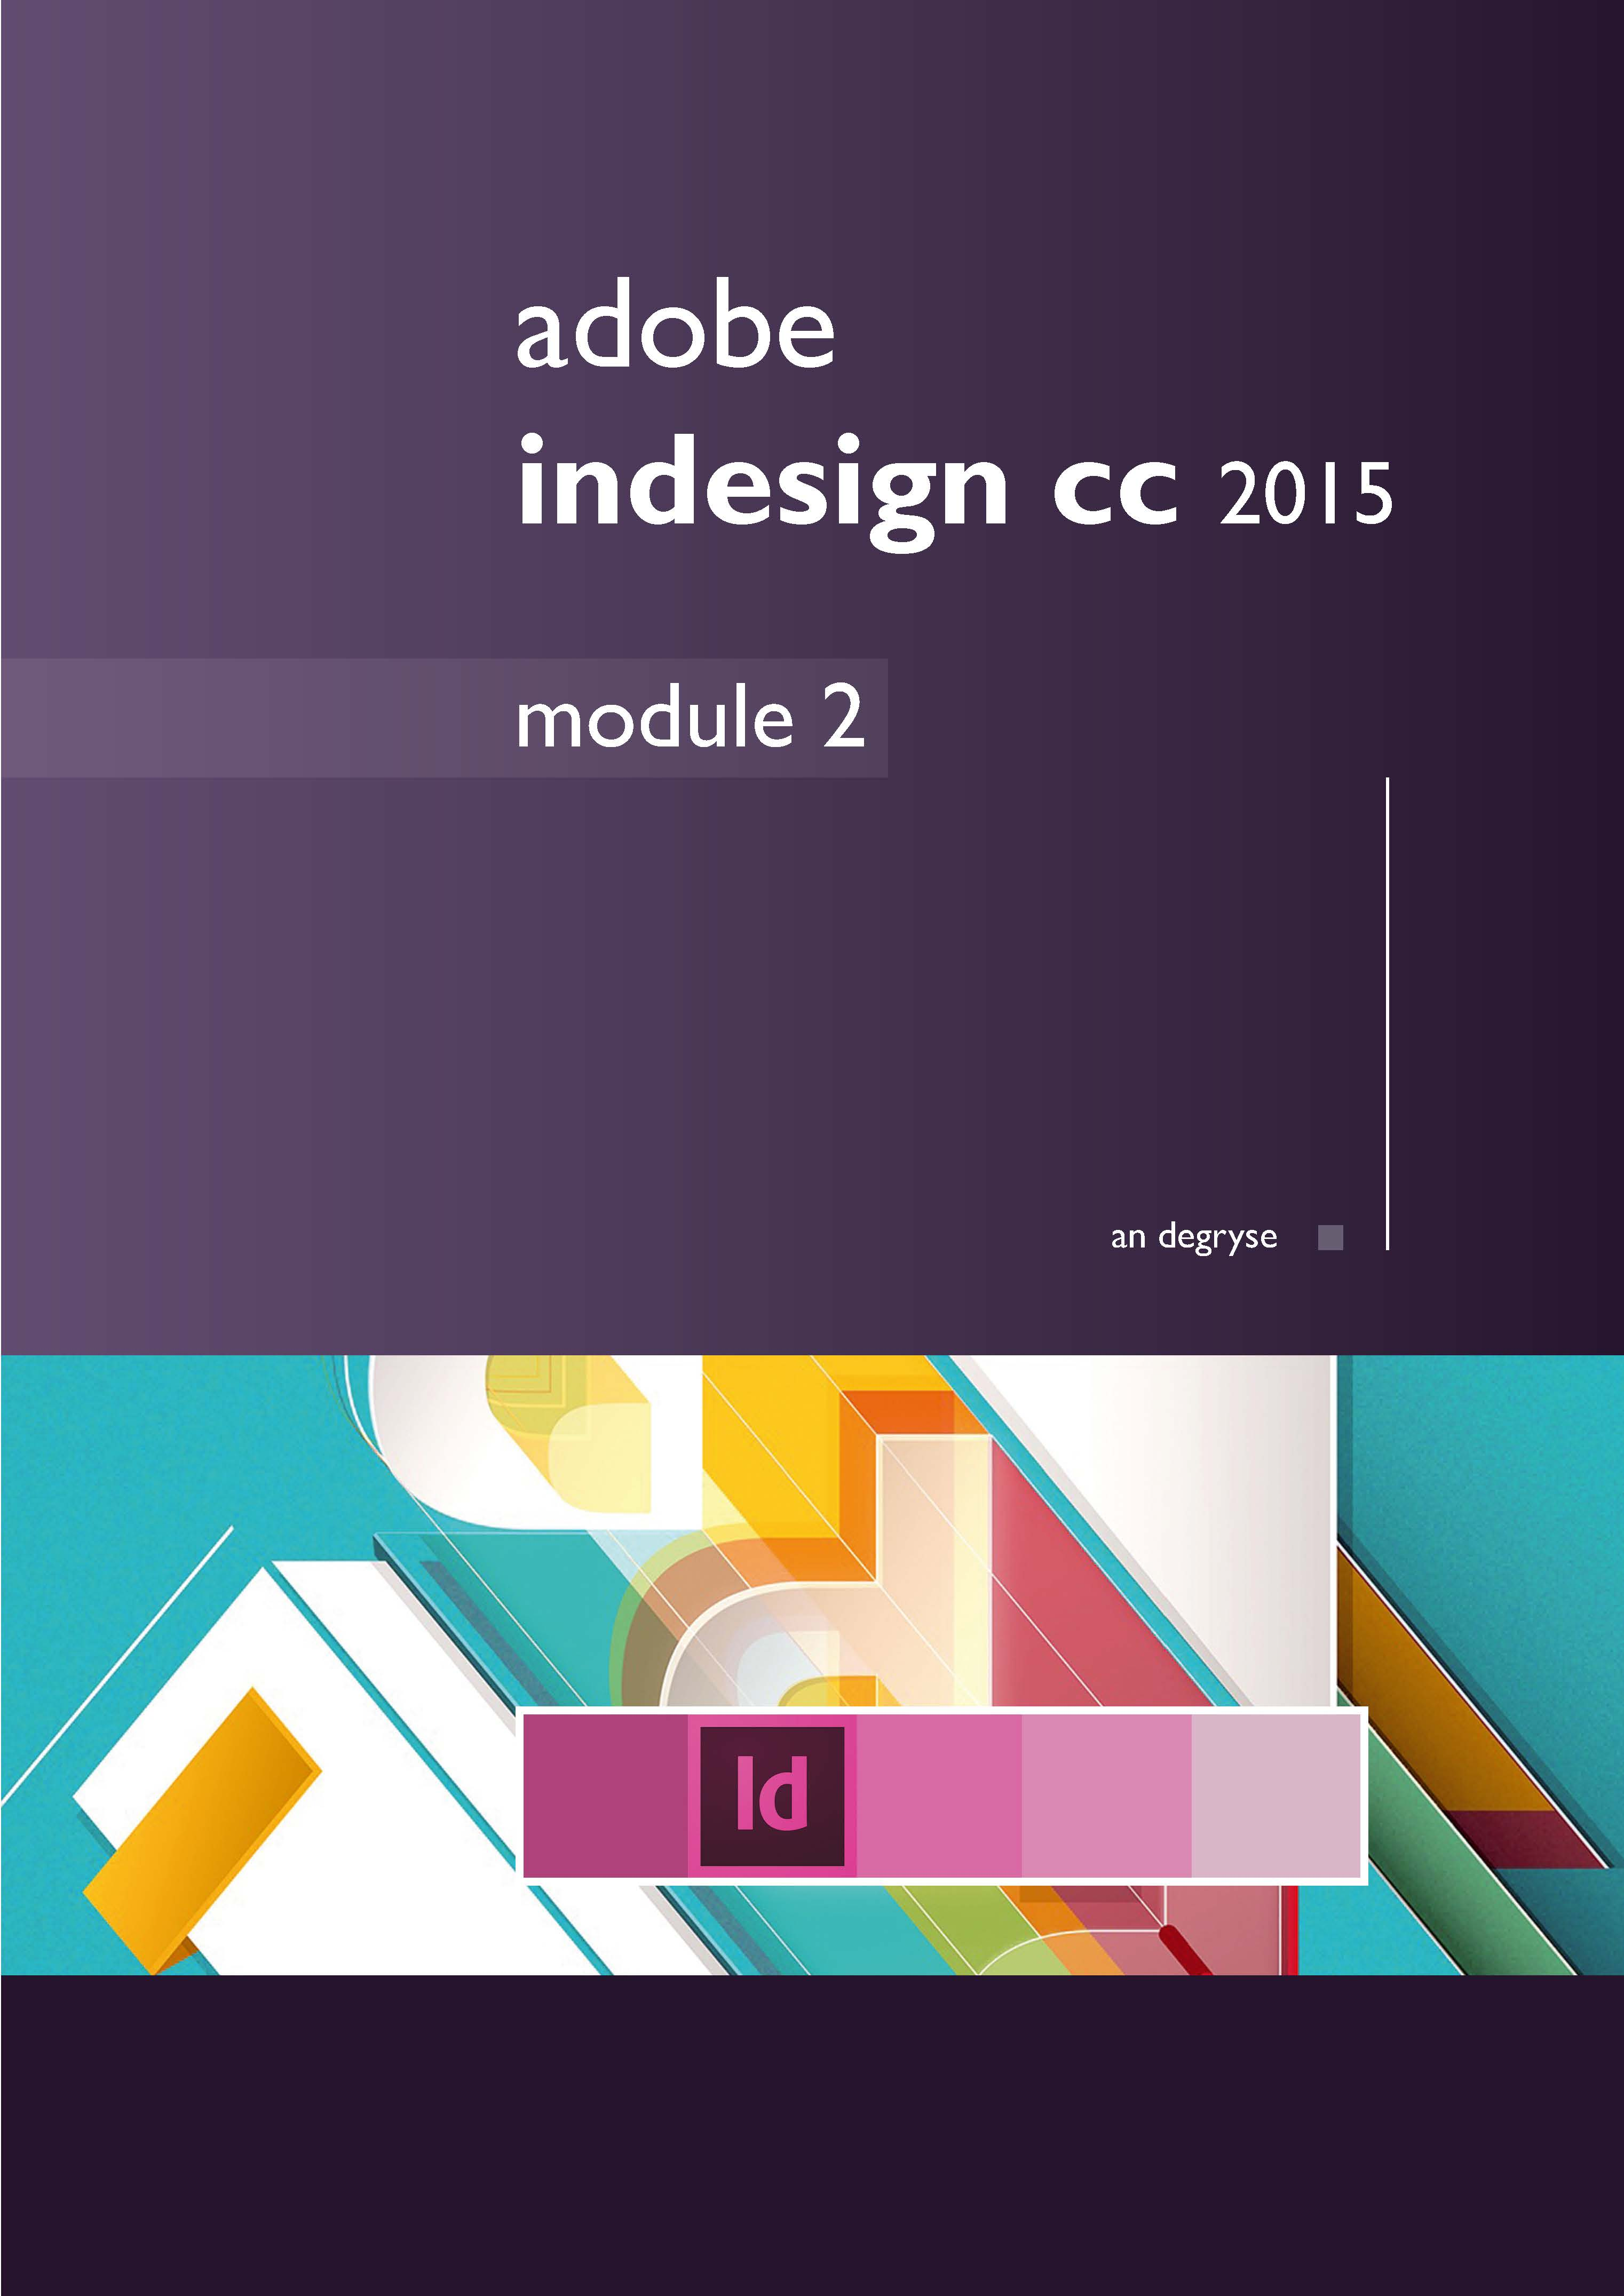 how to use adobe indesign cc 2015